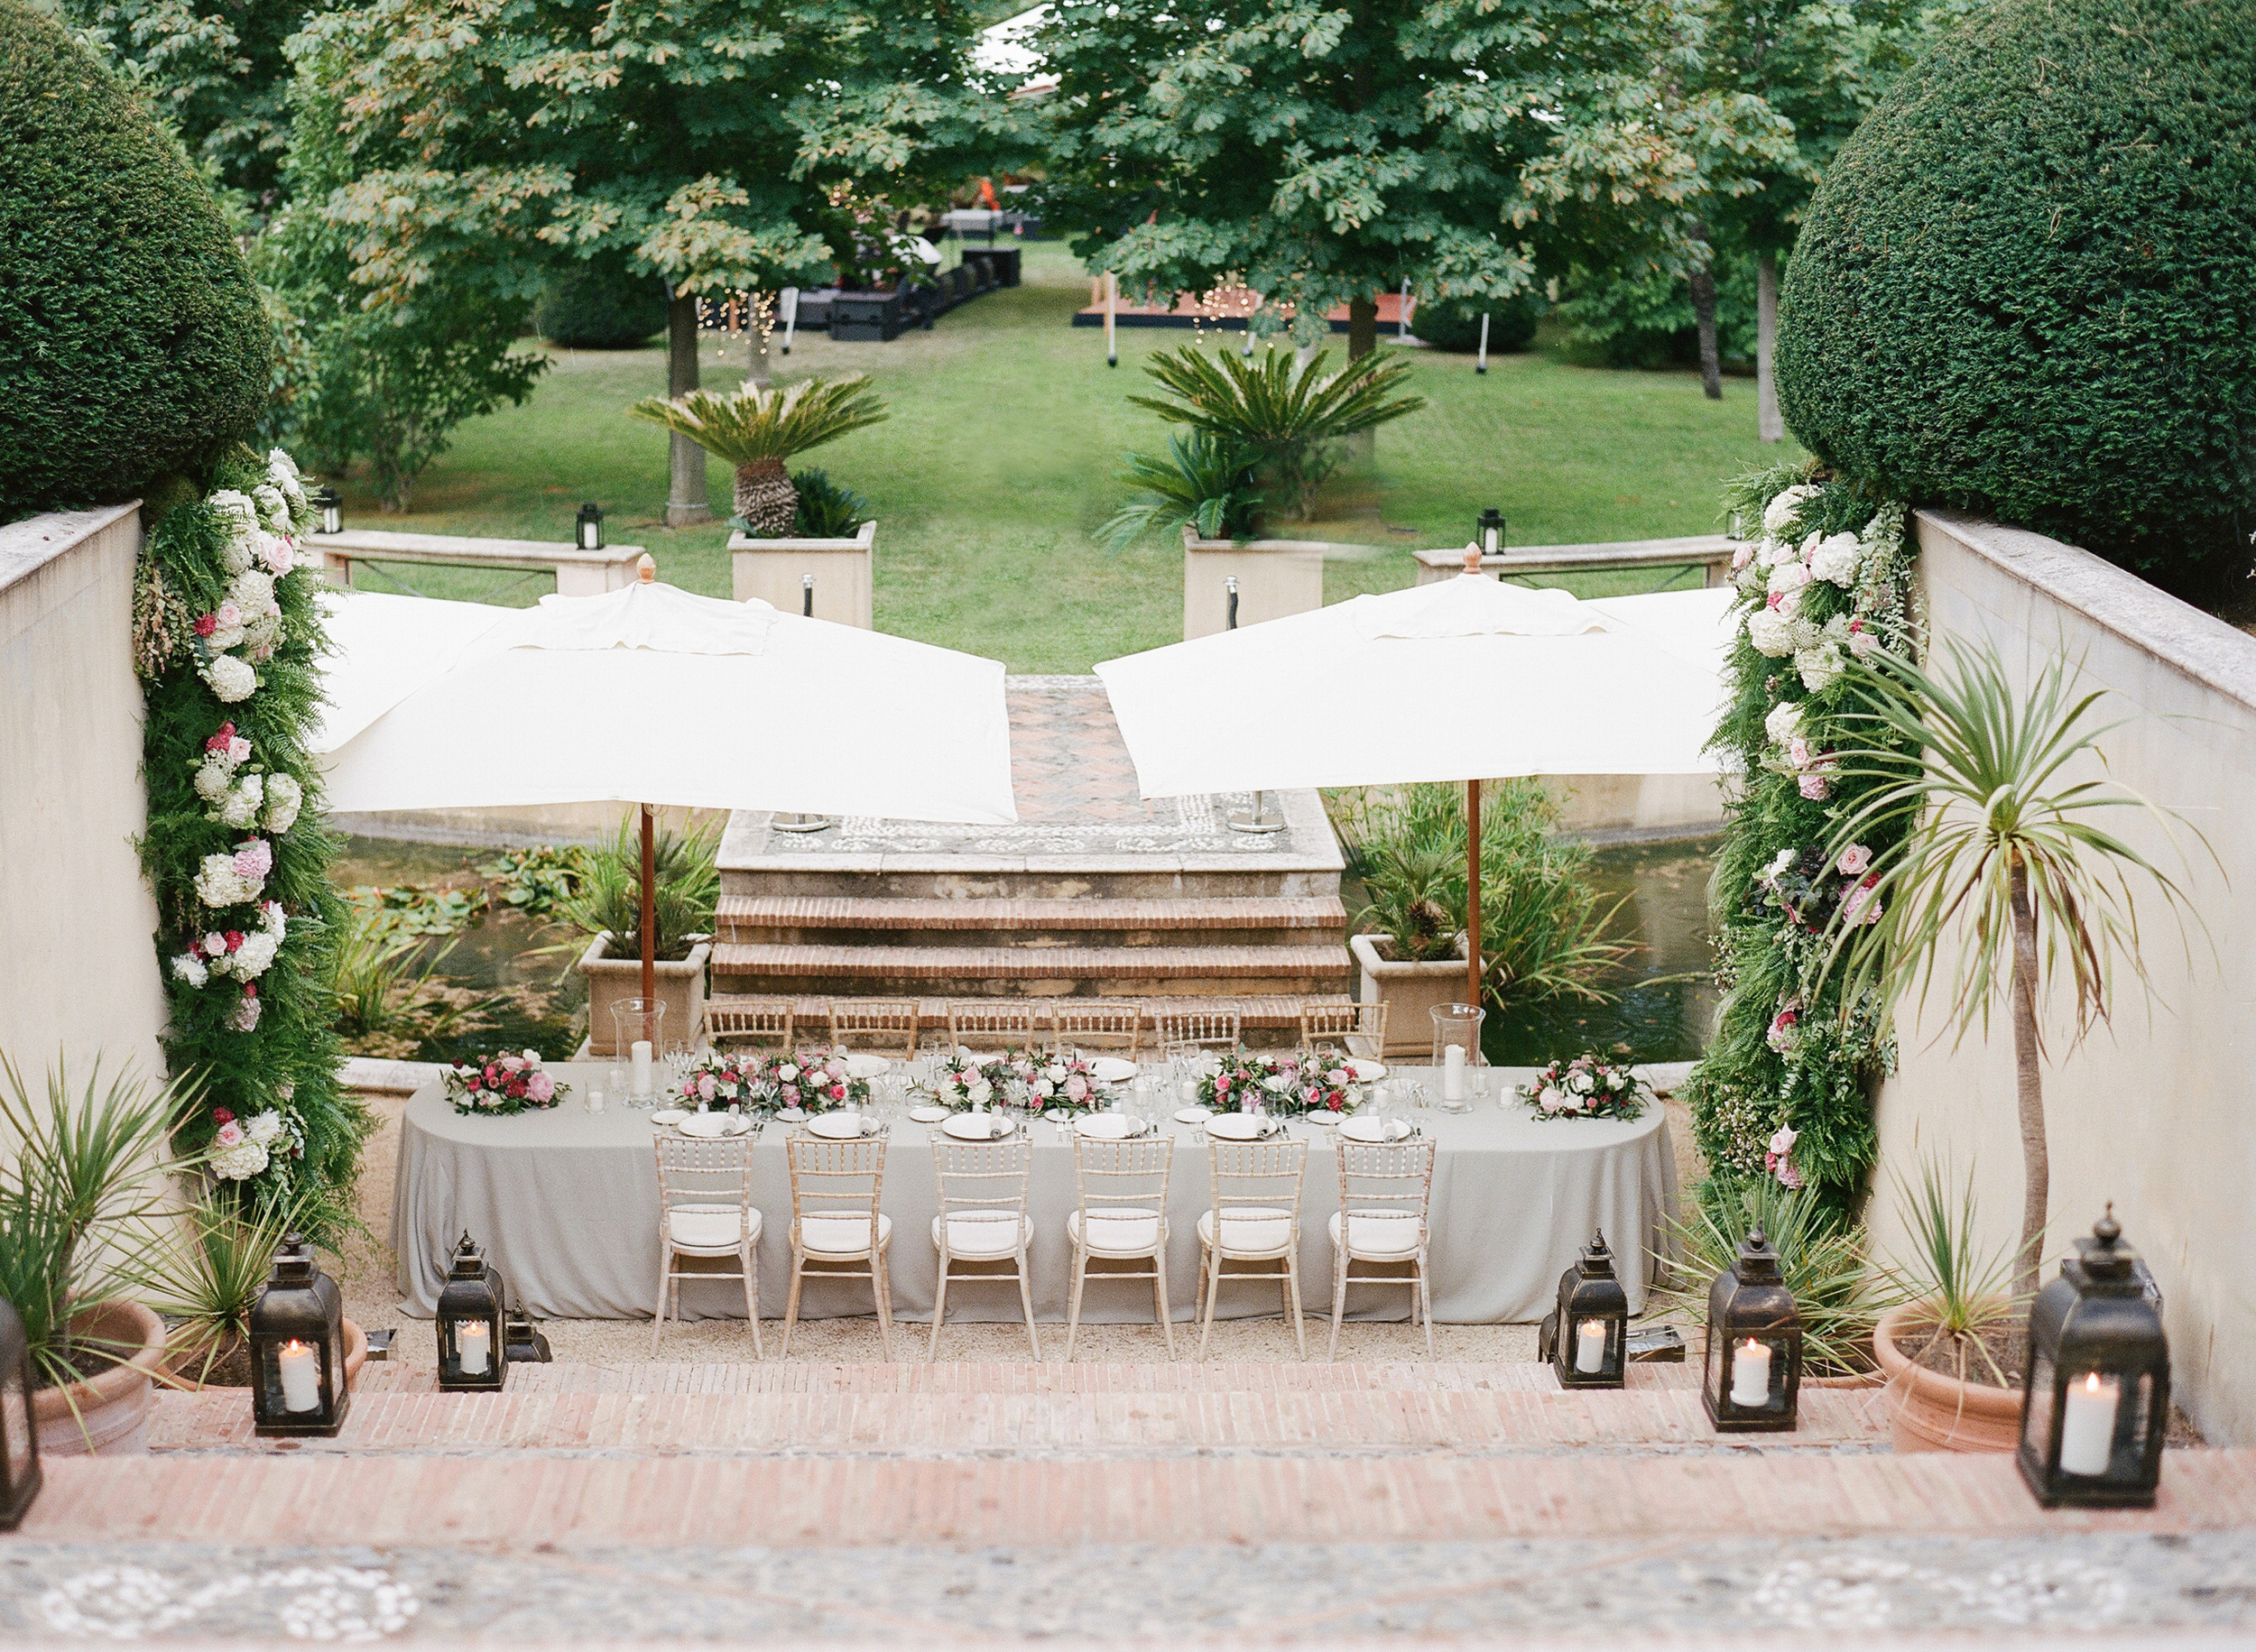 A long reception table lined with floral garlands, lanterns, and shaded by elegant umbrellas; photo by Sylvie Gil